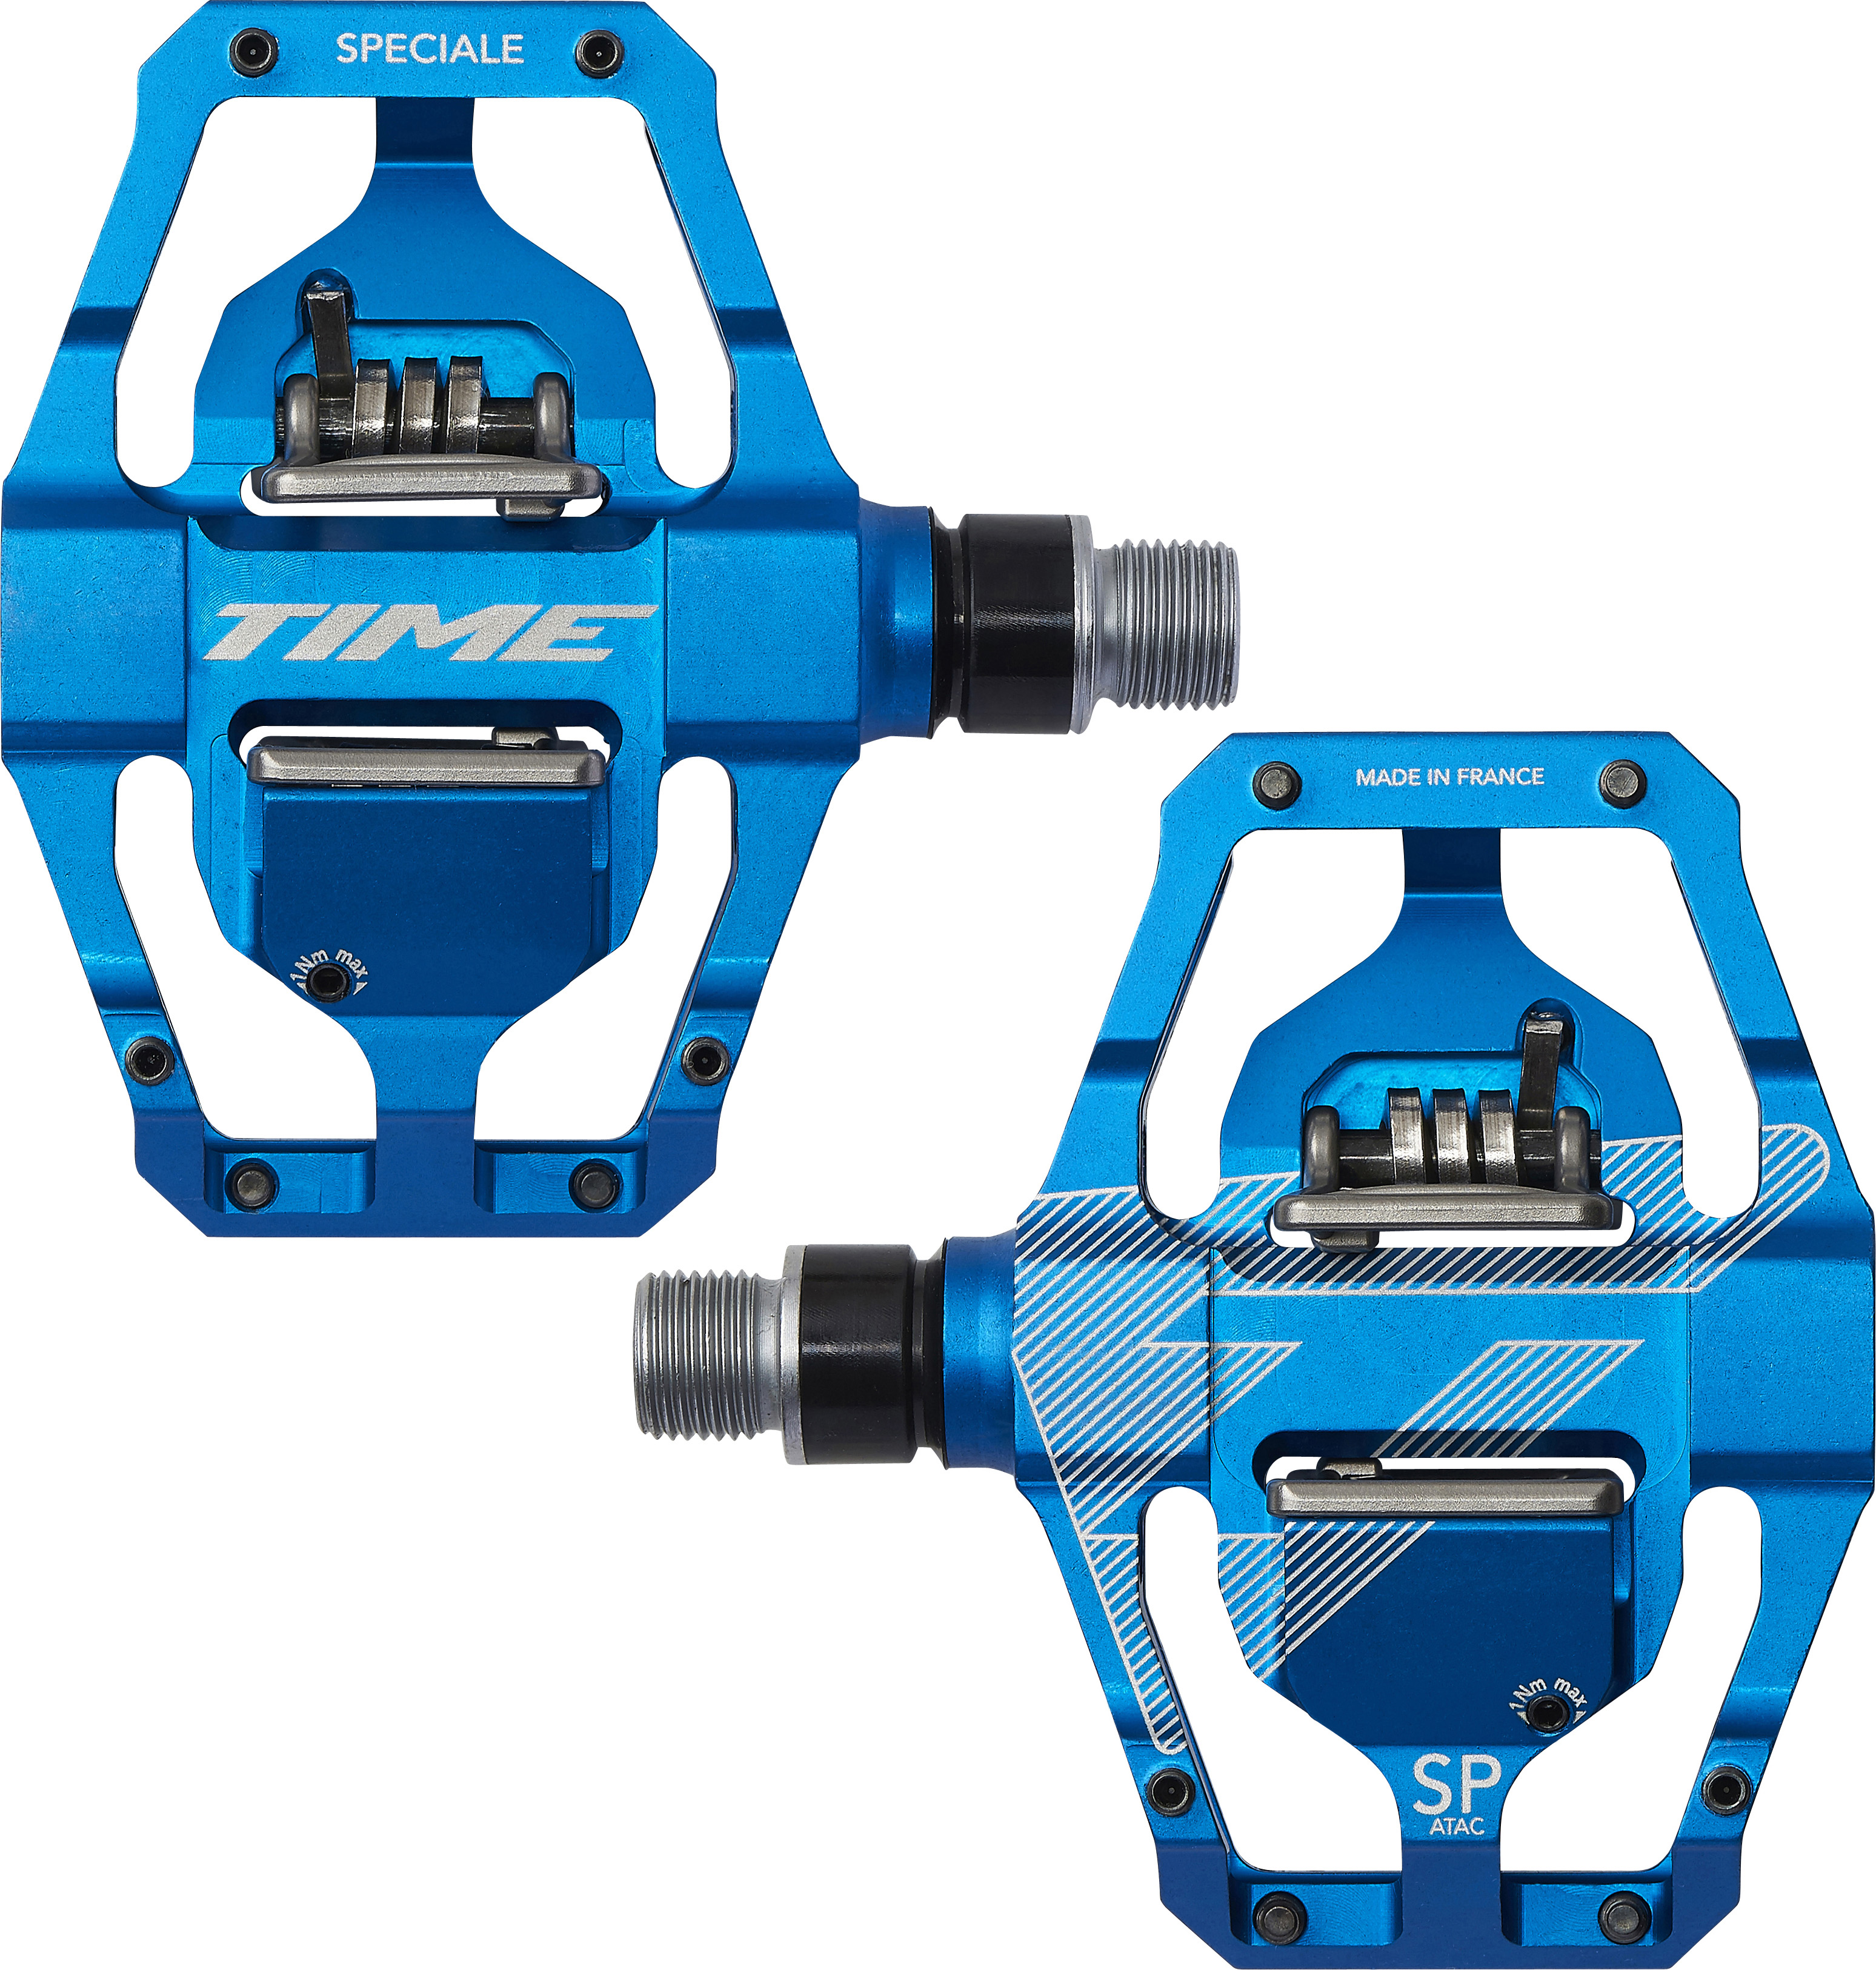 Time Speciale 12 Pedals | Pedals